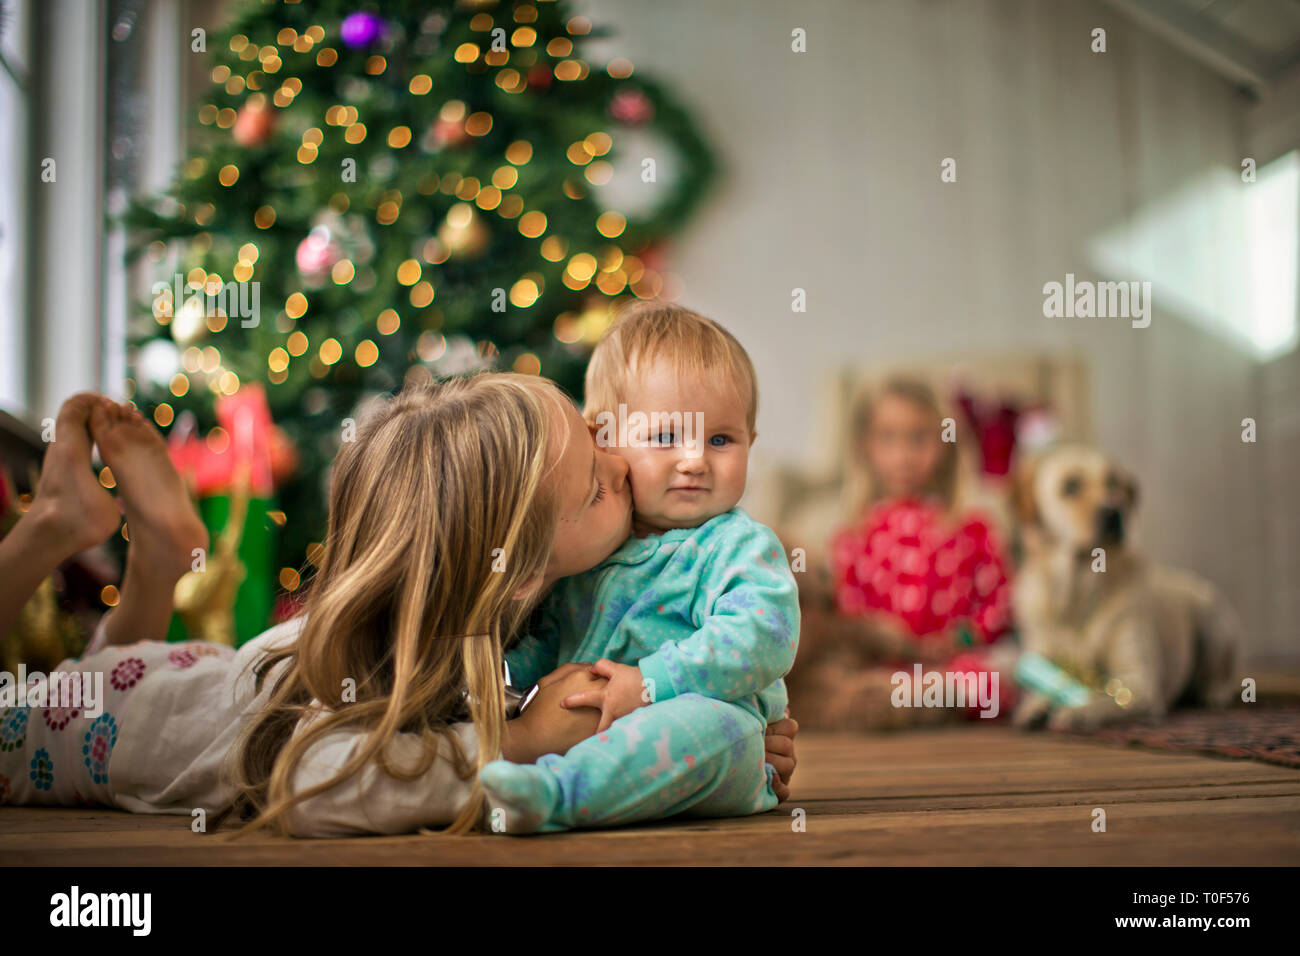 Young girl kissing her baby sister on the cheek. - Stock Image